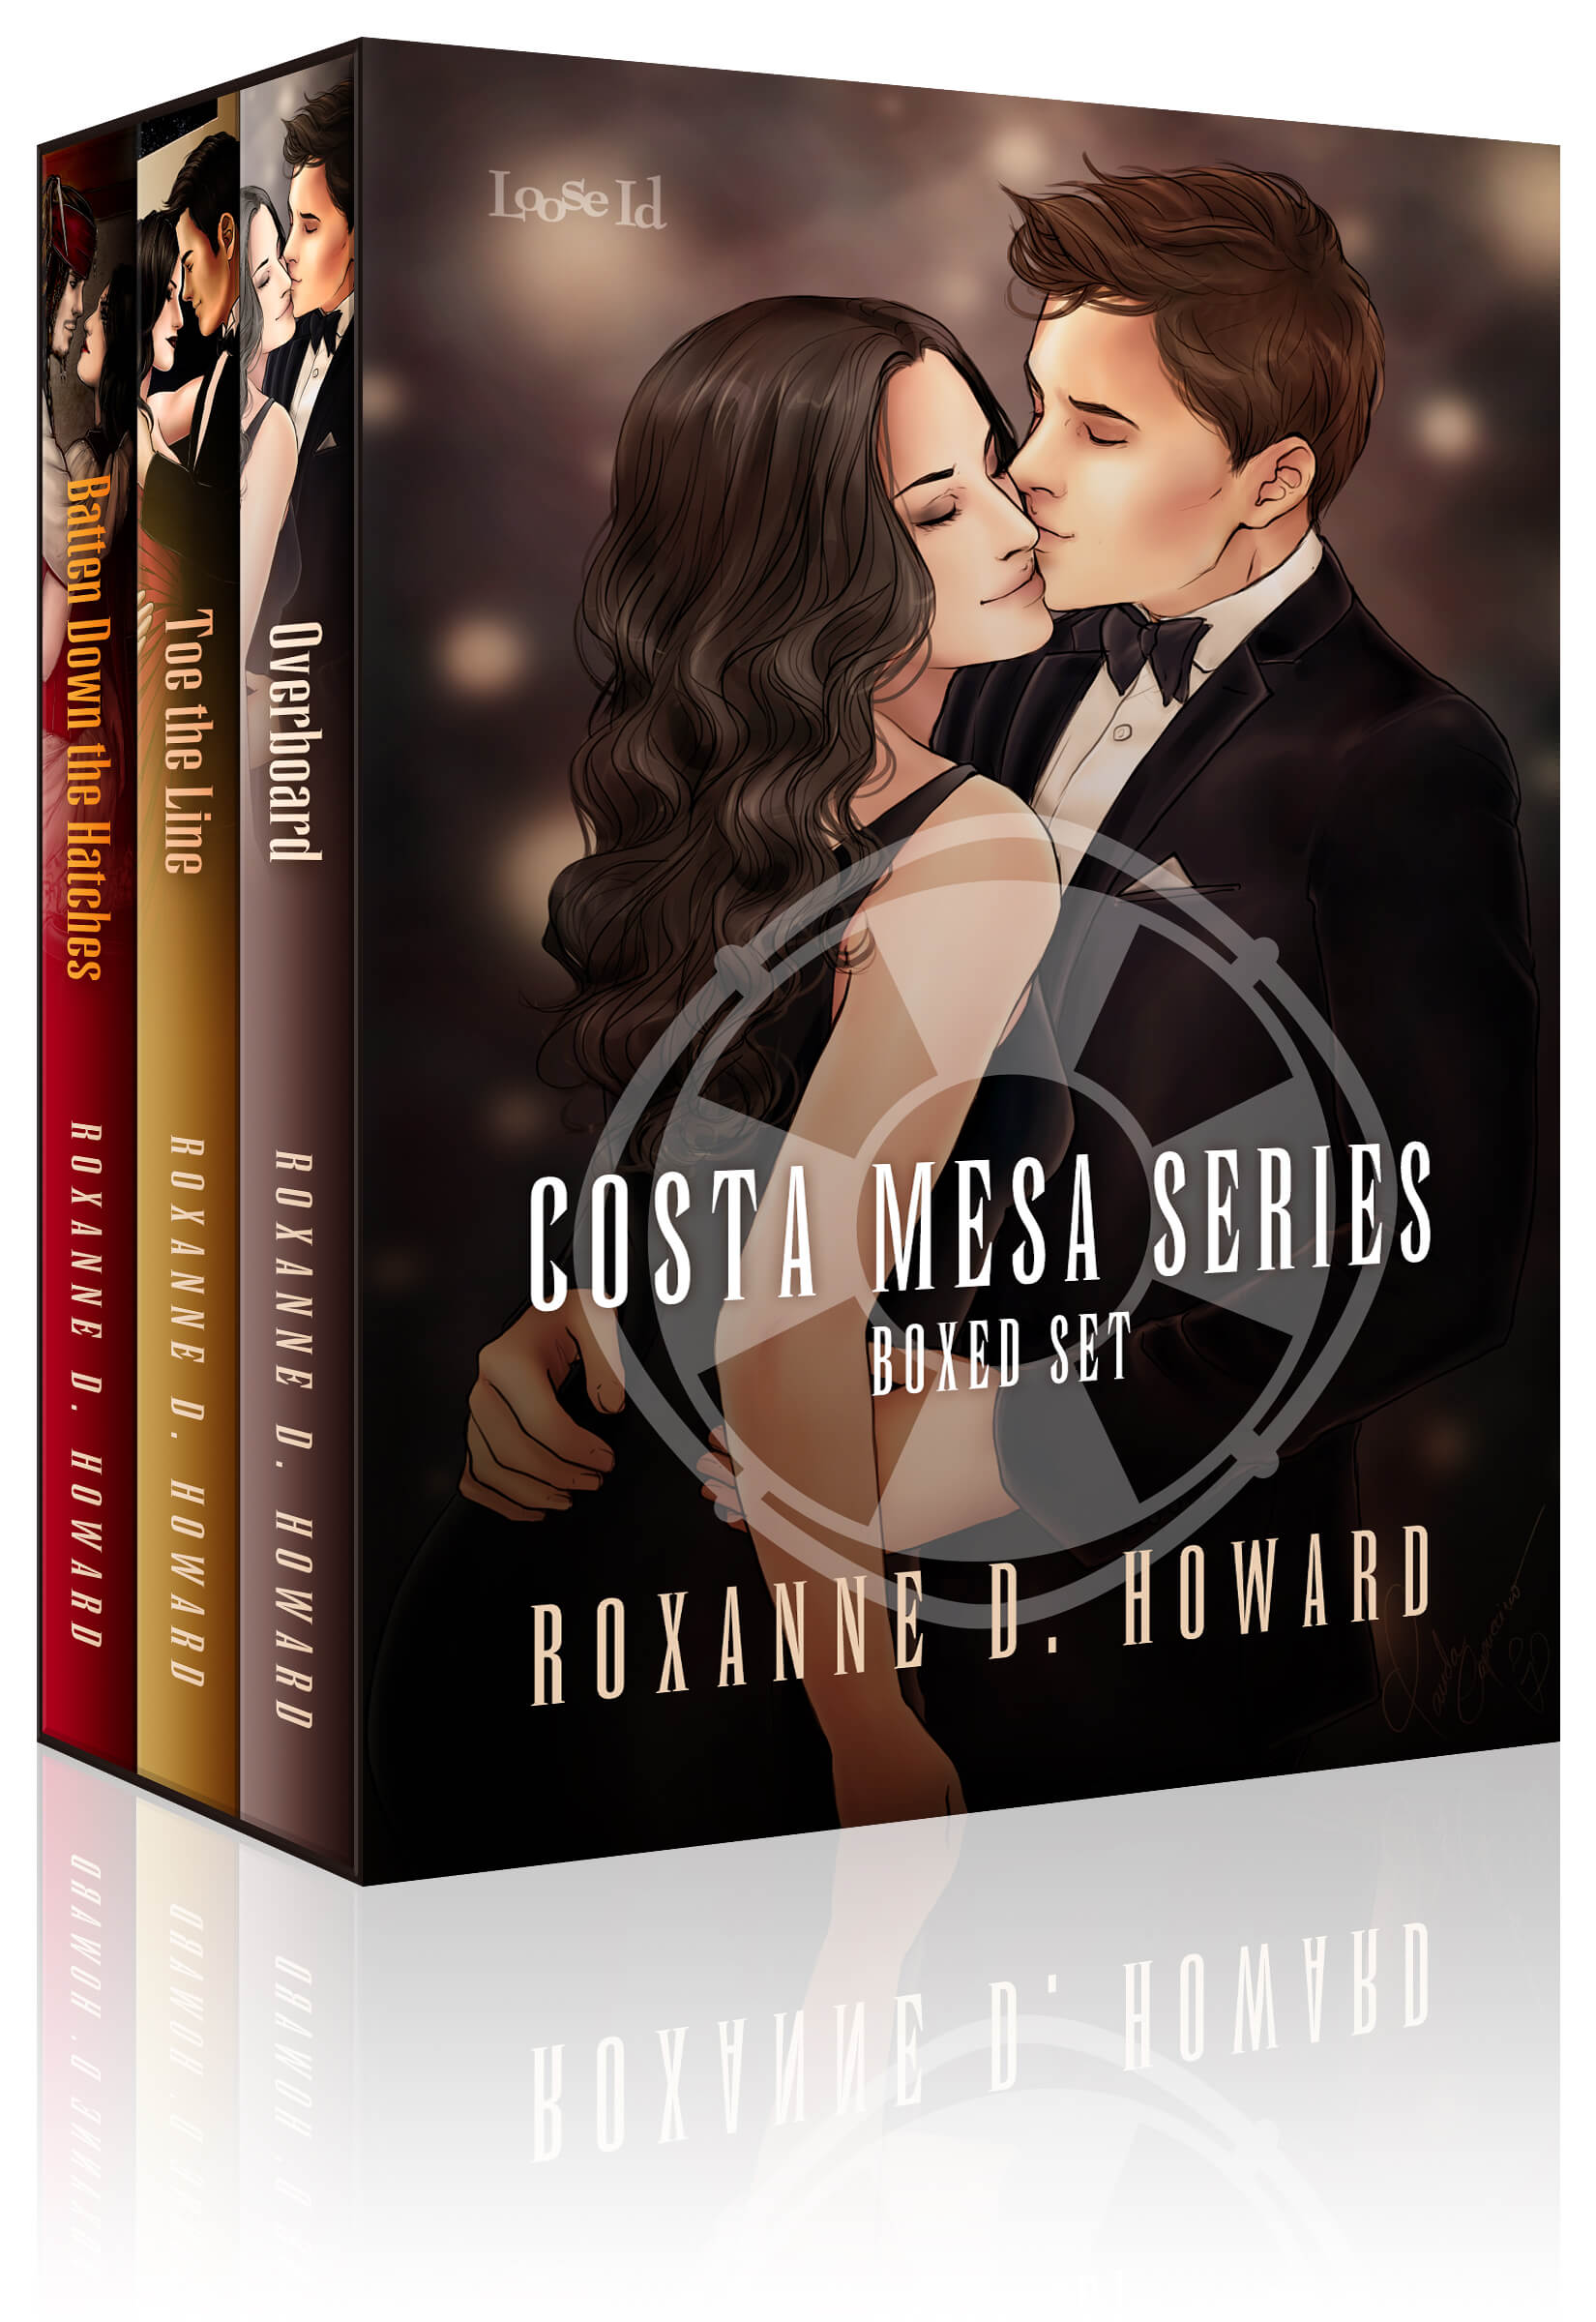 Costa Mesa Boxed Set and Autographed Paperback Giveaway!